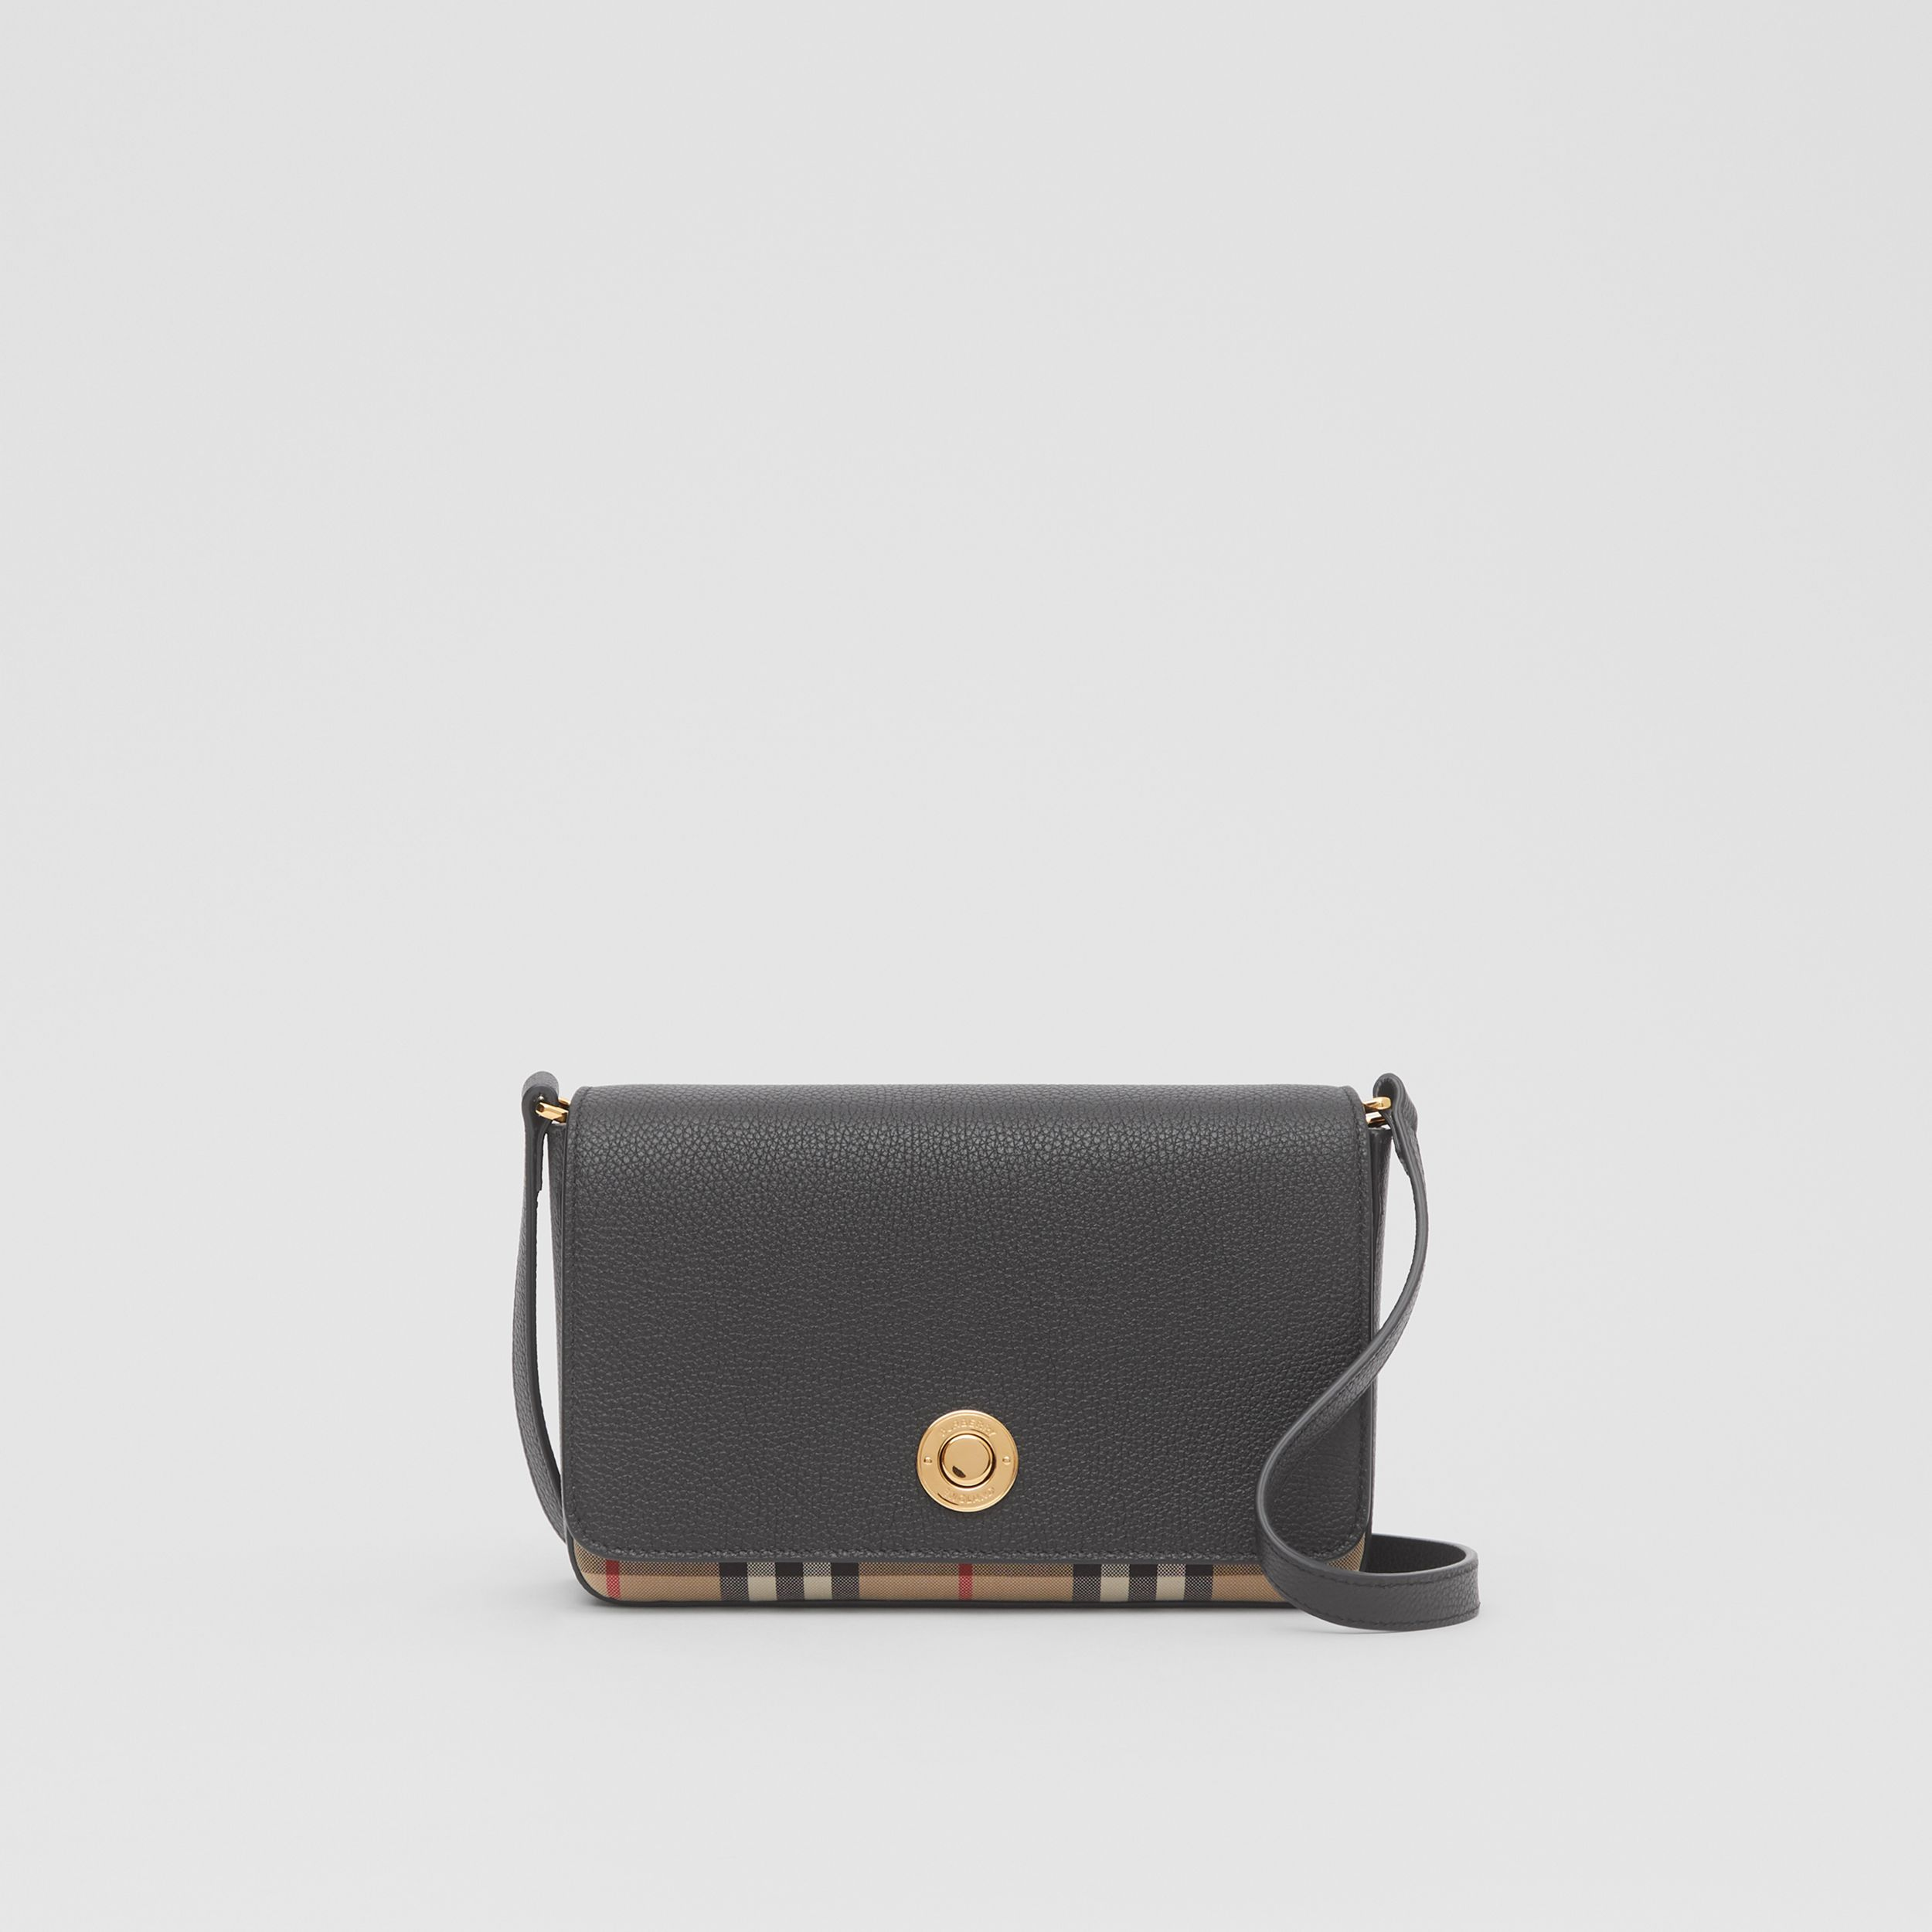 Small Leather and Vintage Check Crossbody Bag in Black - Women | Burberry Australia - 1